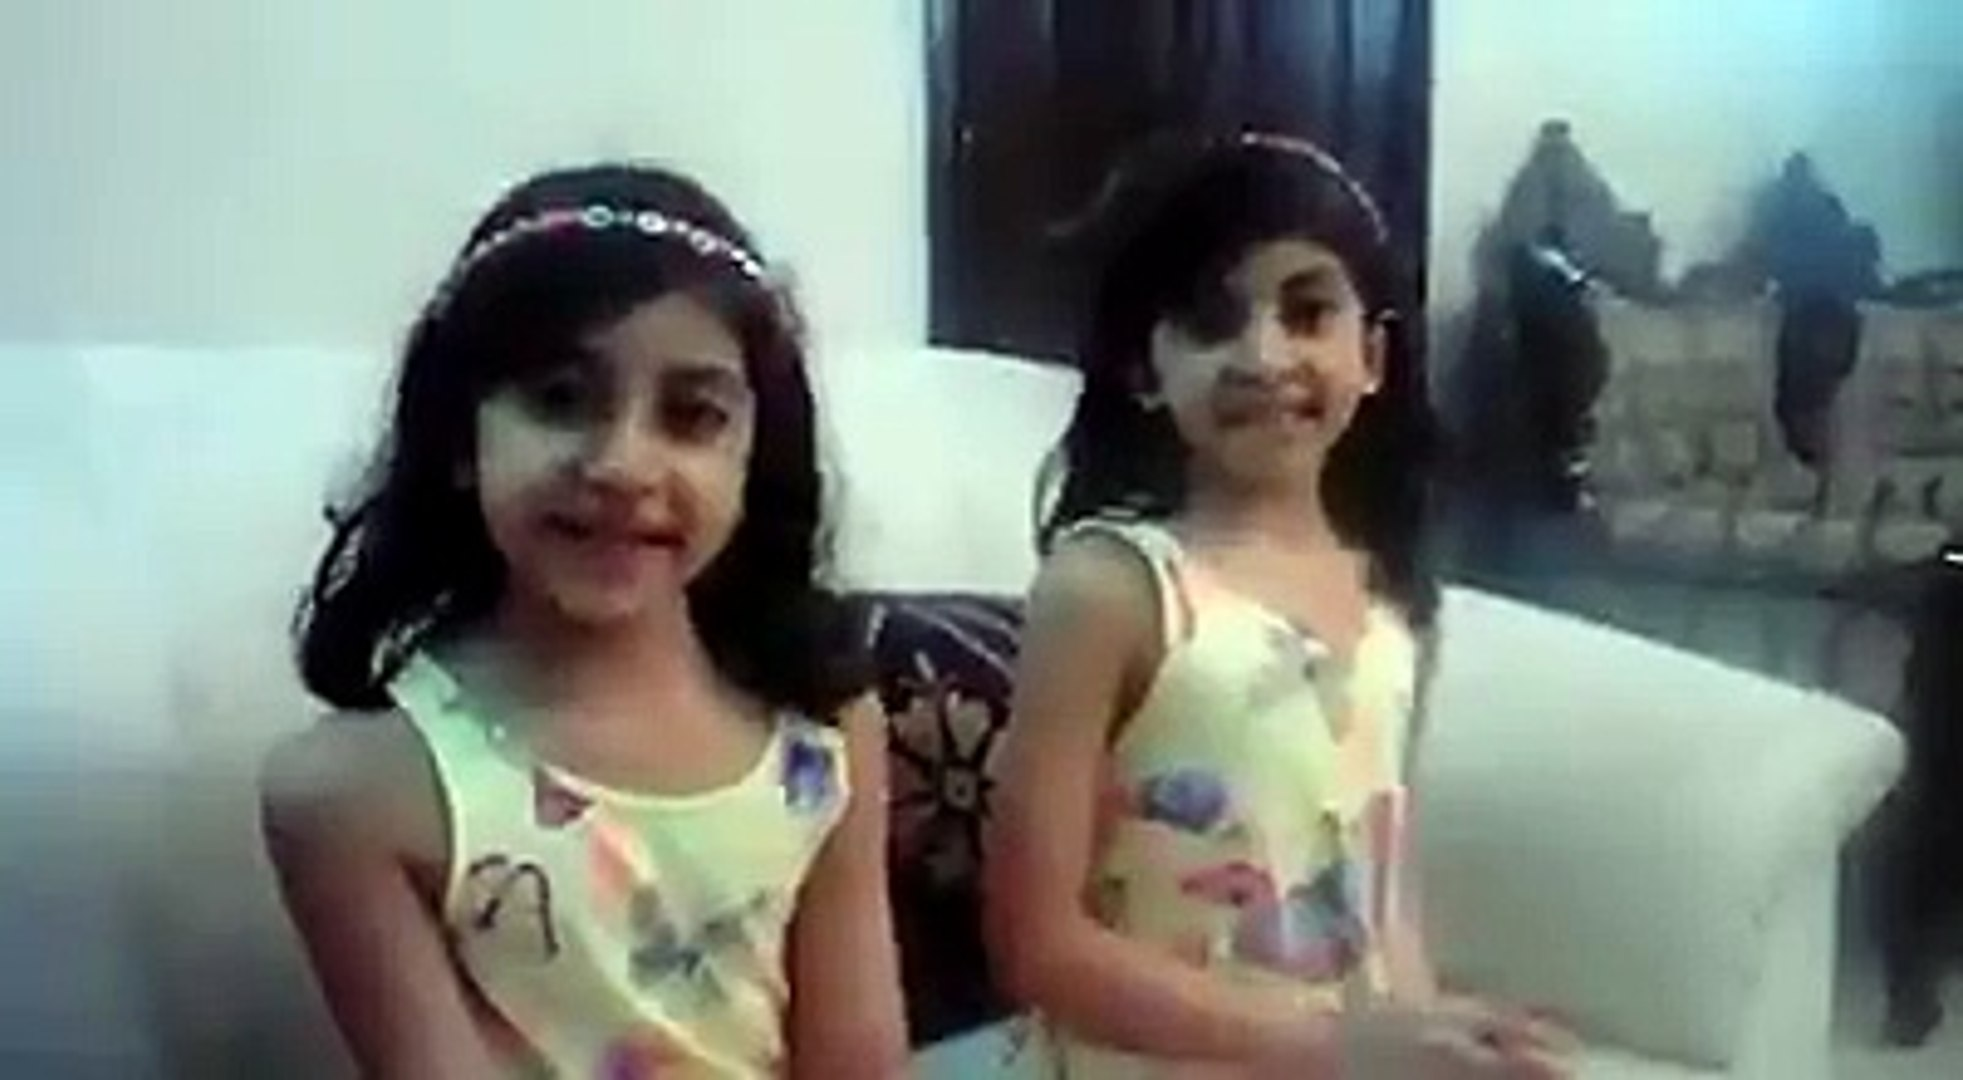 Funny video of cute twins